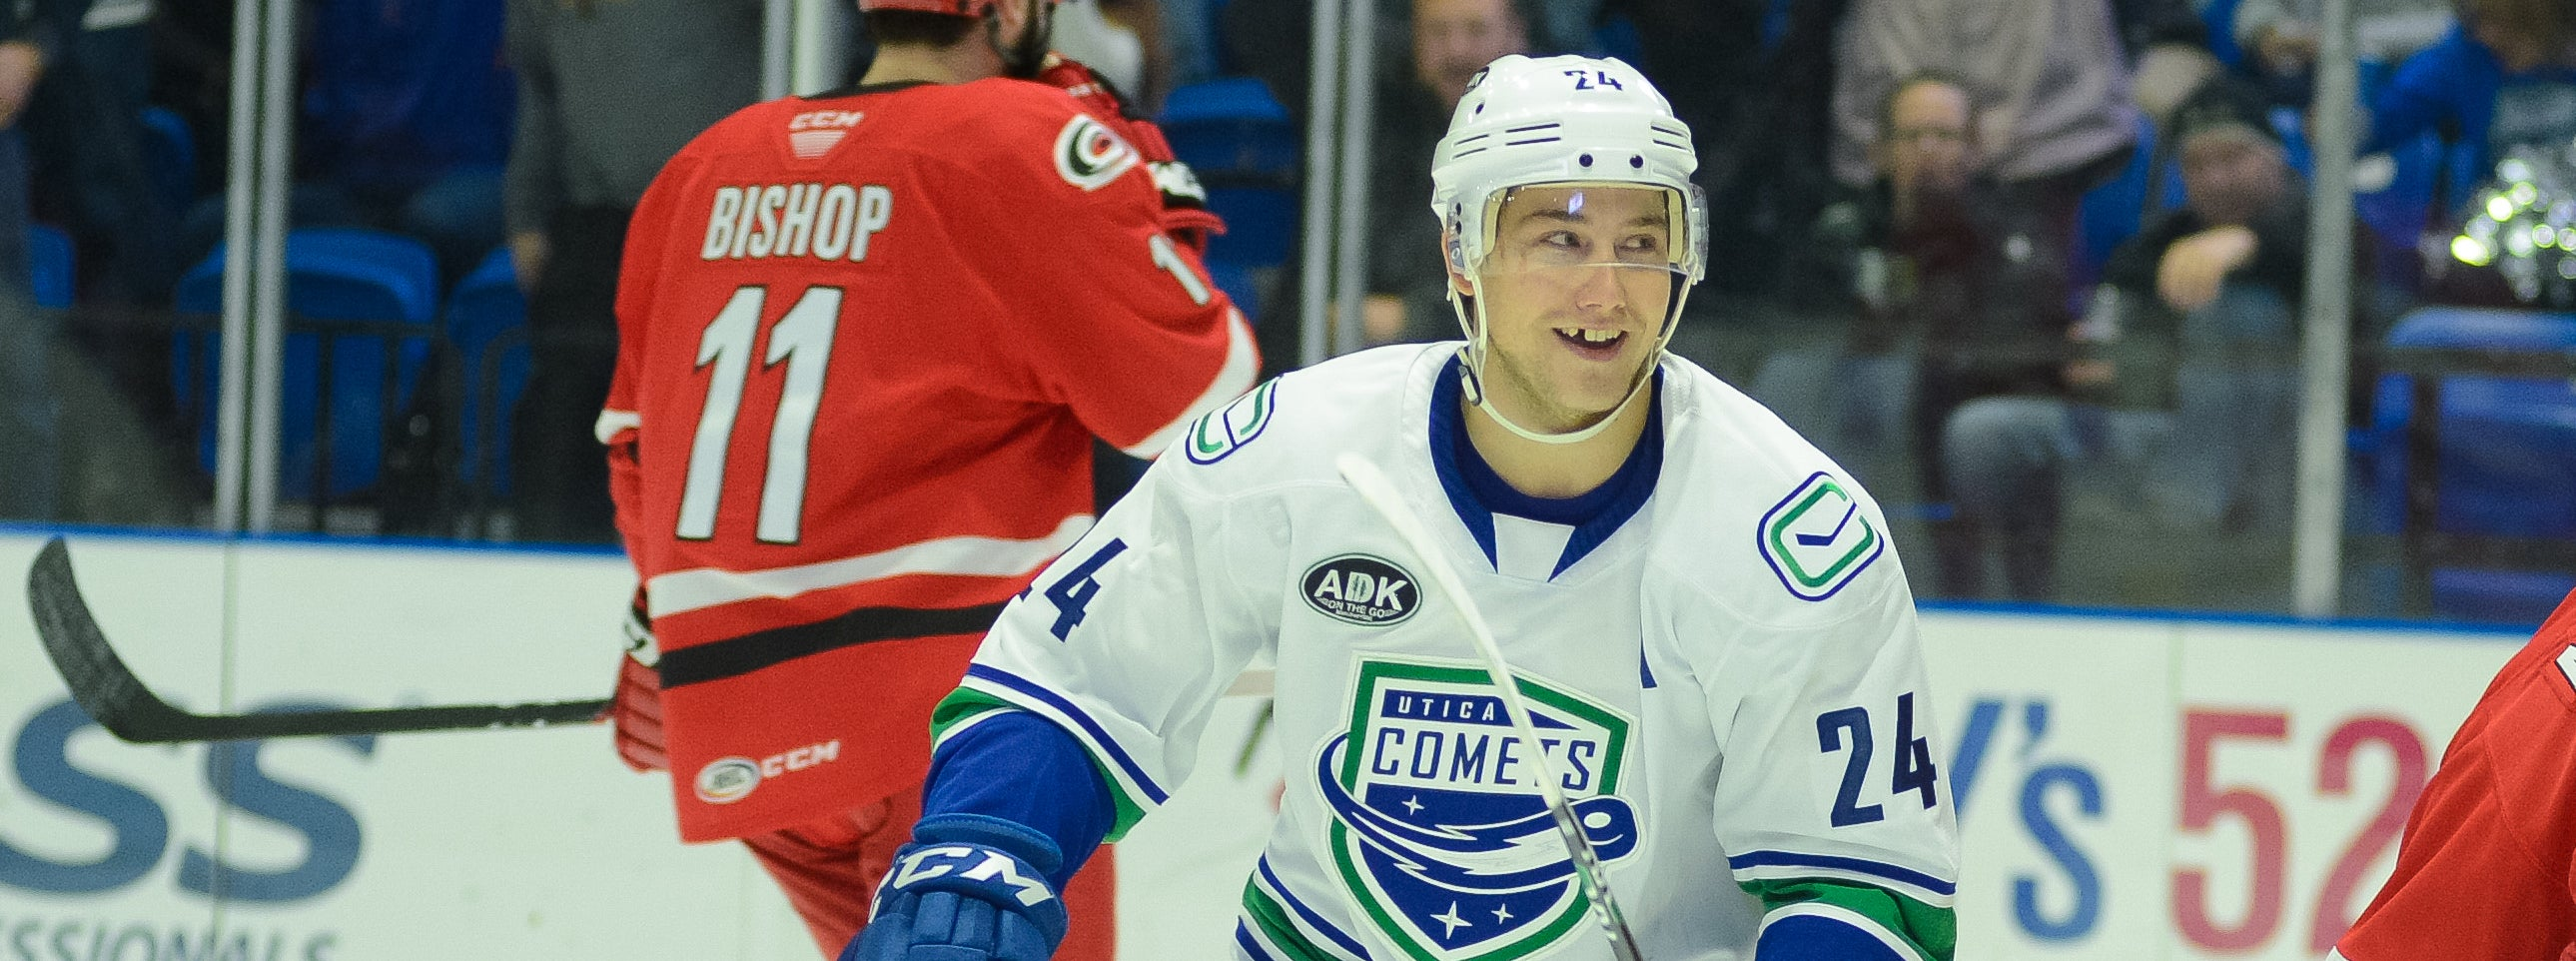 BOUCHER NAMED CCM/AHL PLAYER OF THE MONTH